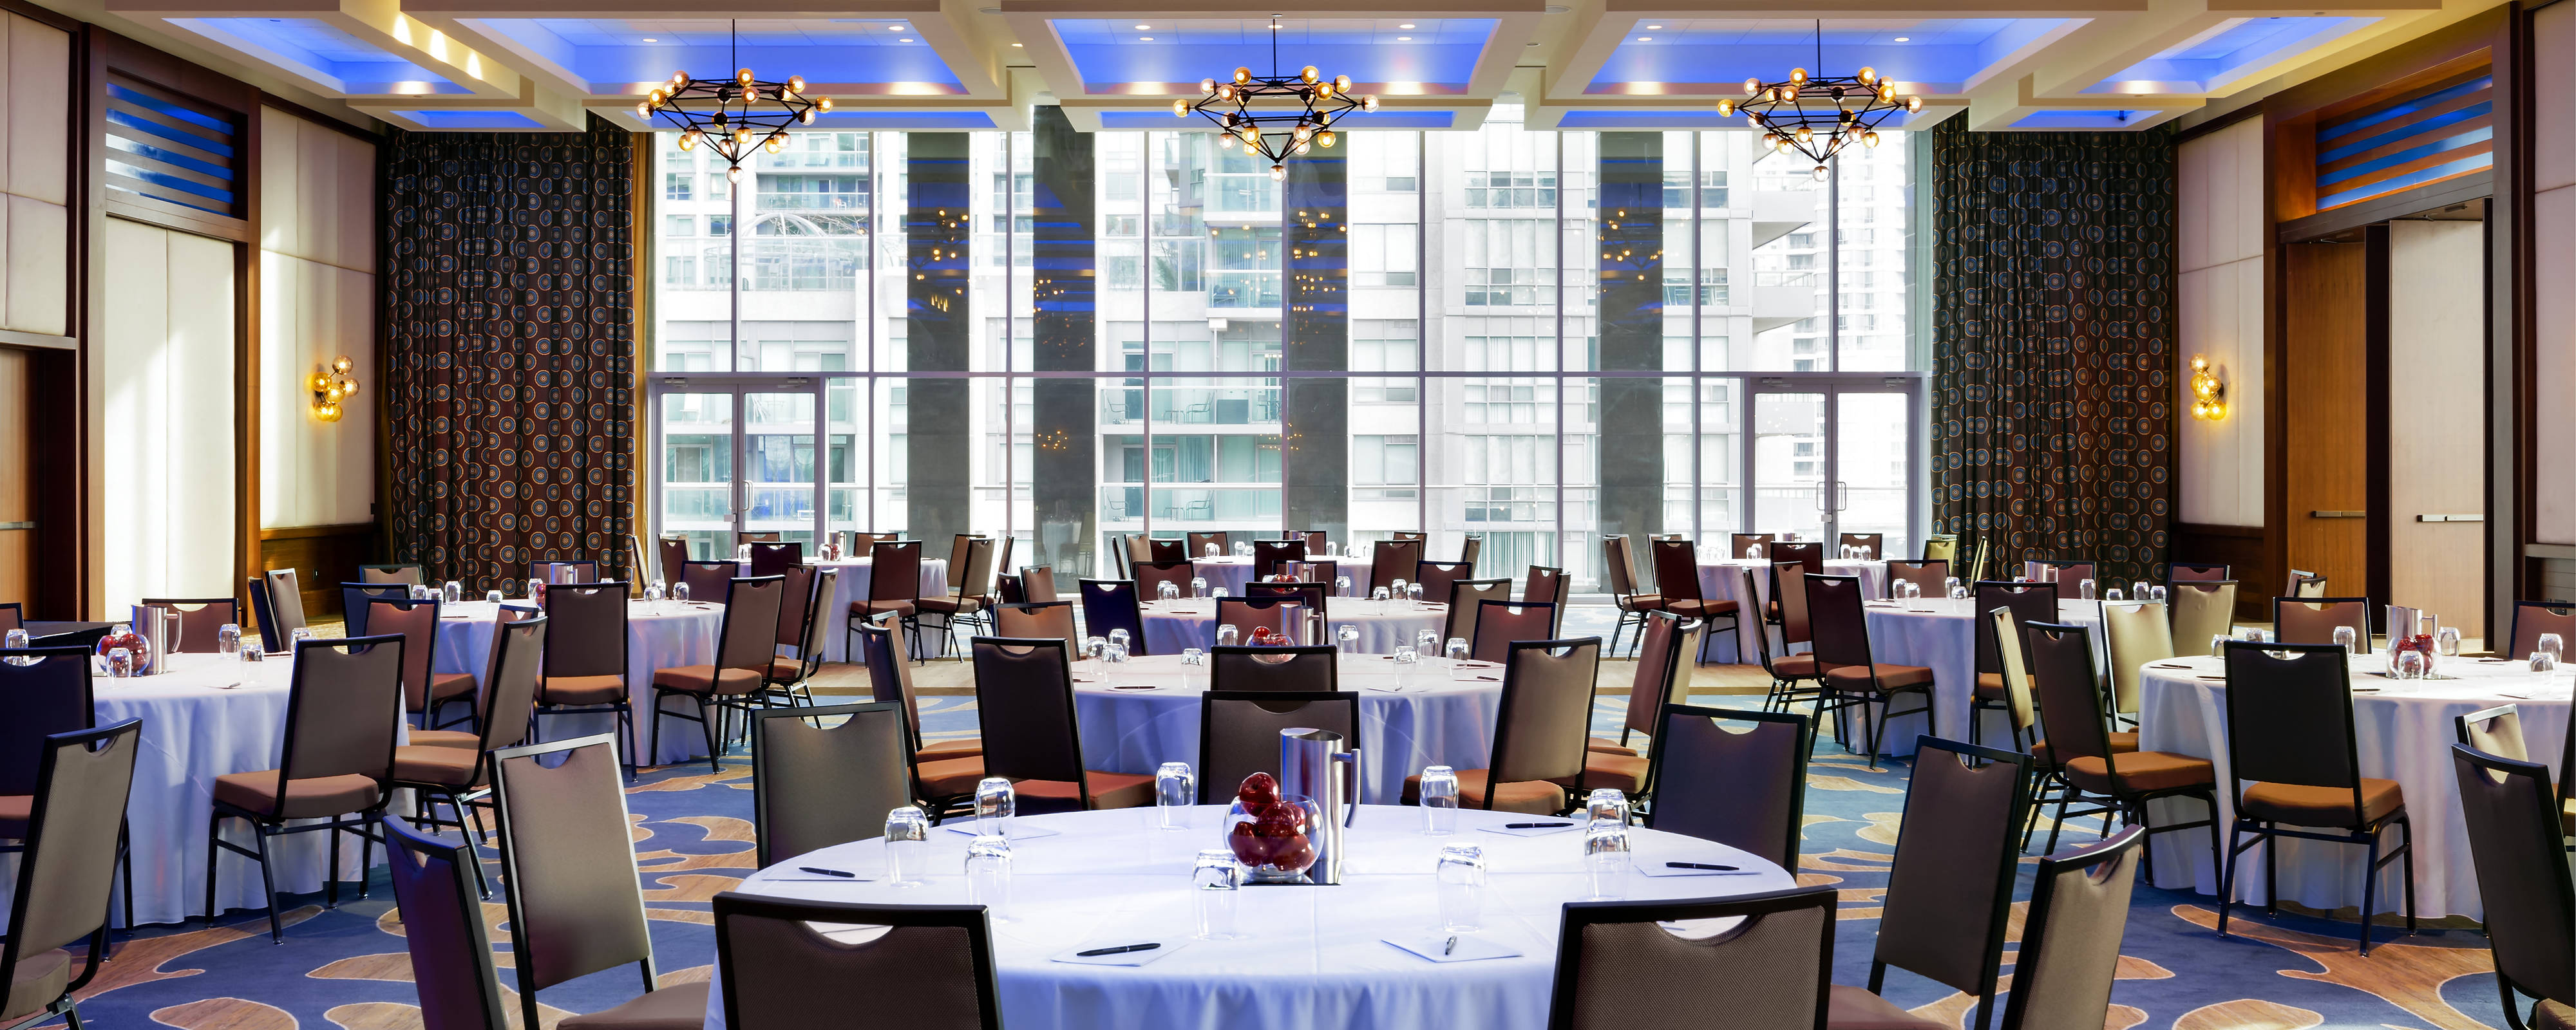 The-Top-20-Corporate-Event-Venues-in-Toronto-14